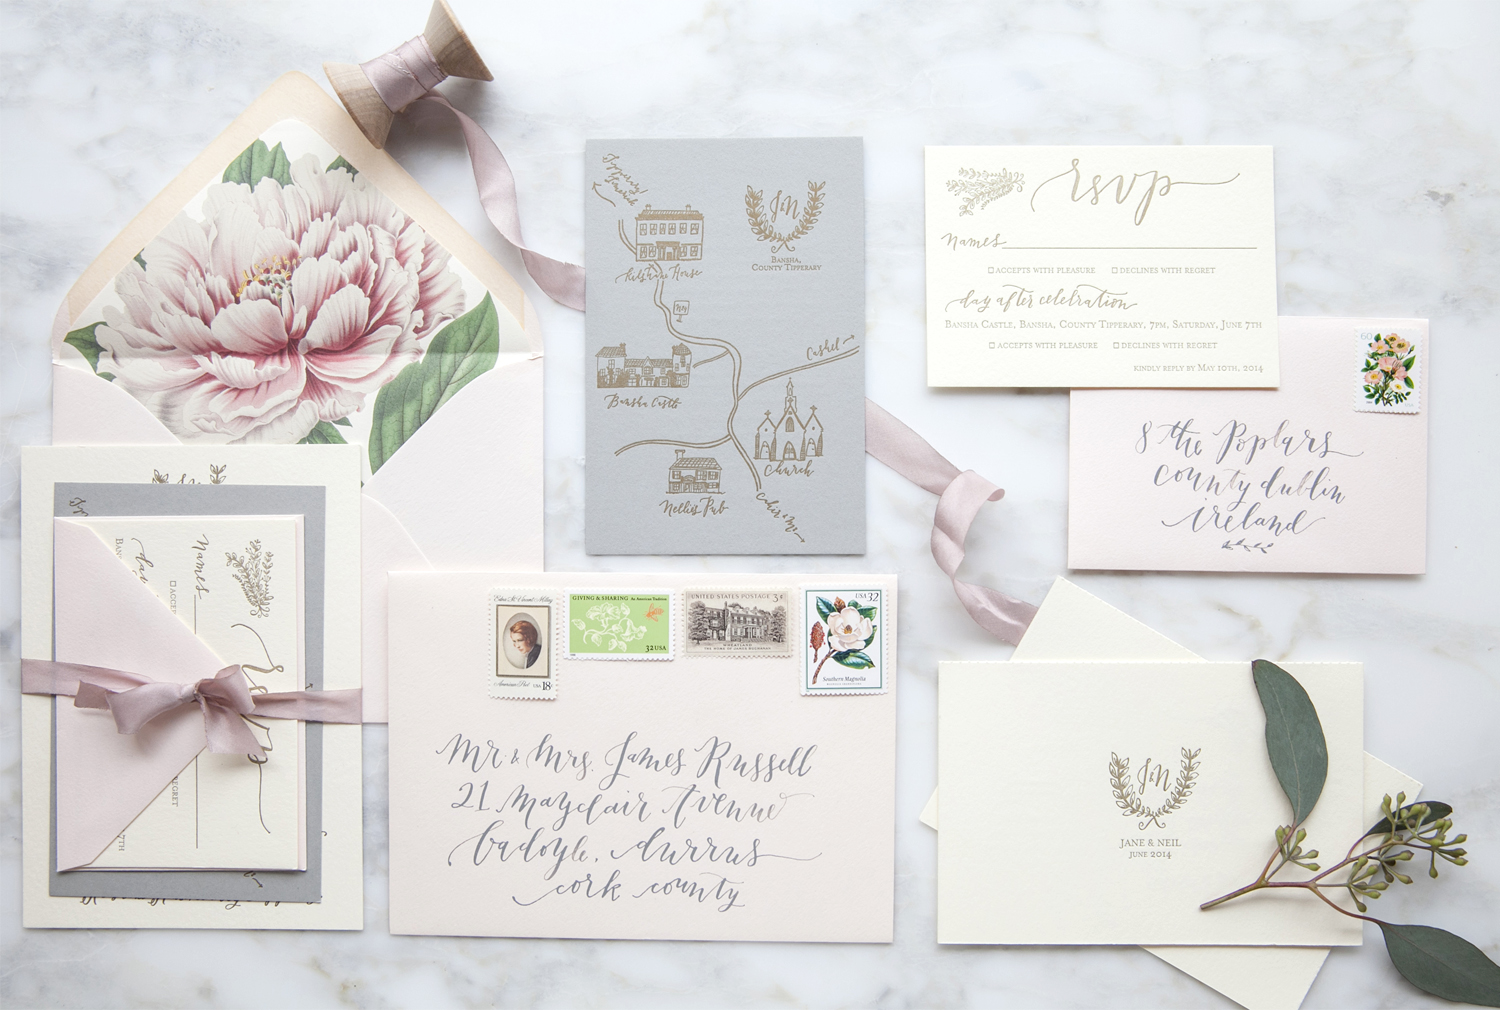 la Happy Calligraphy letterpress invitation set